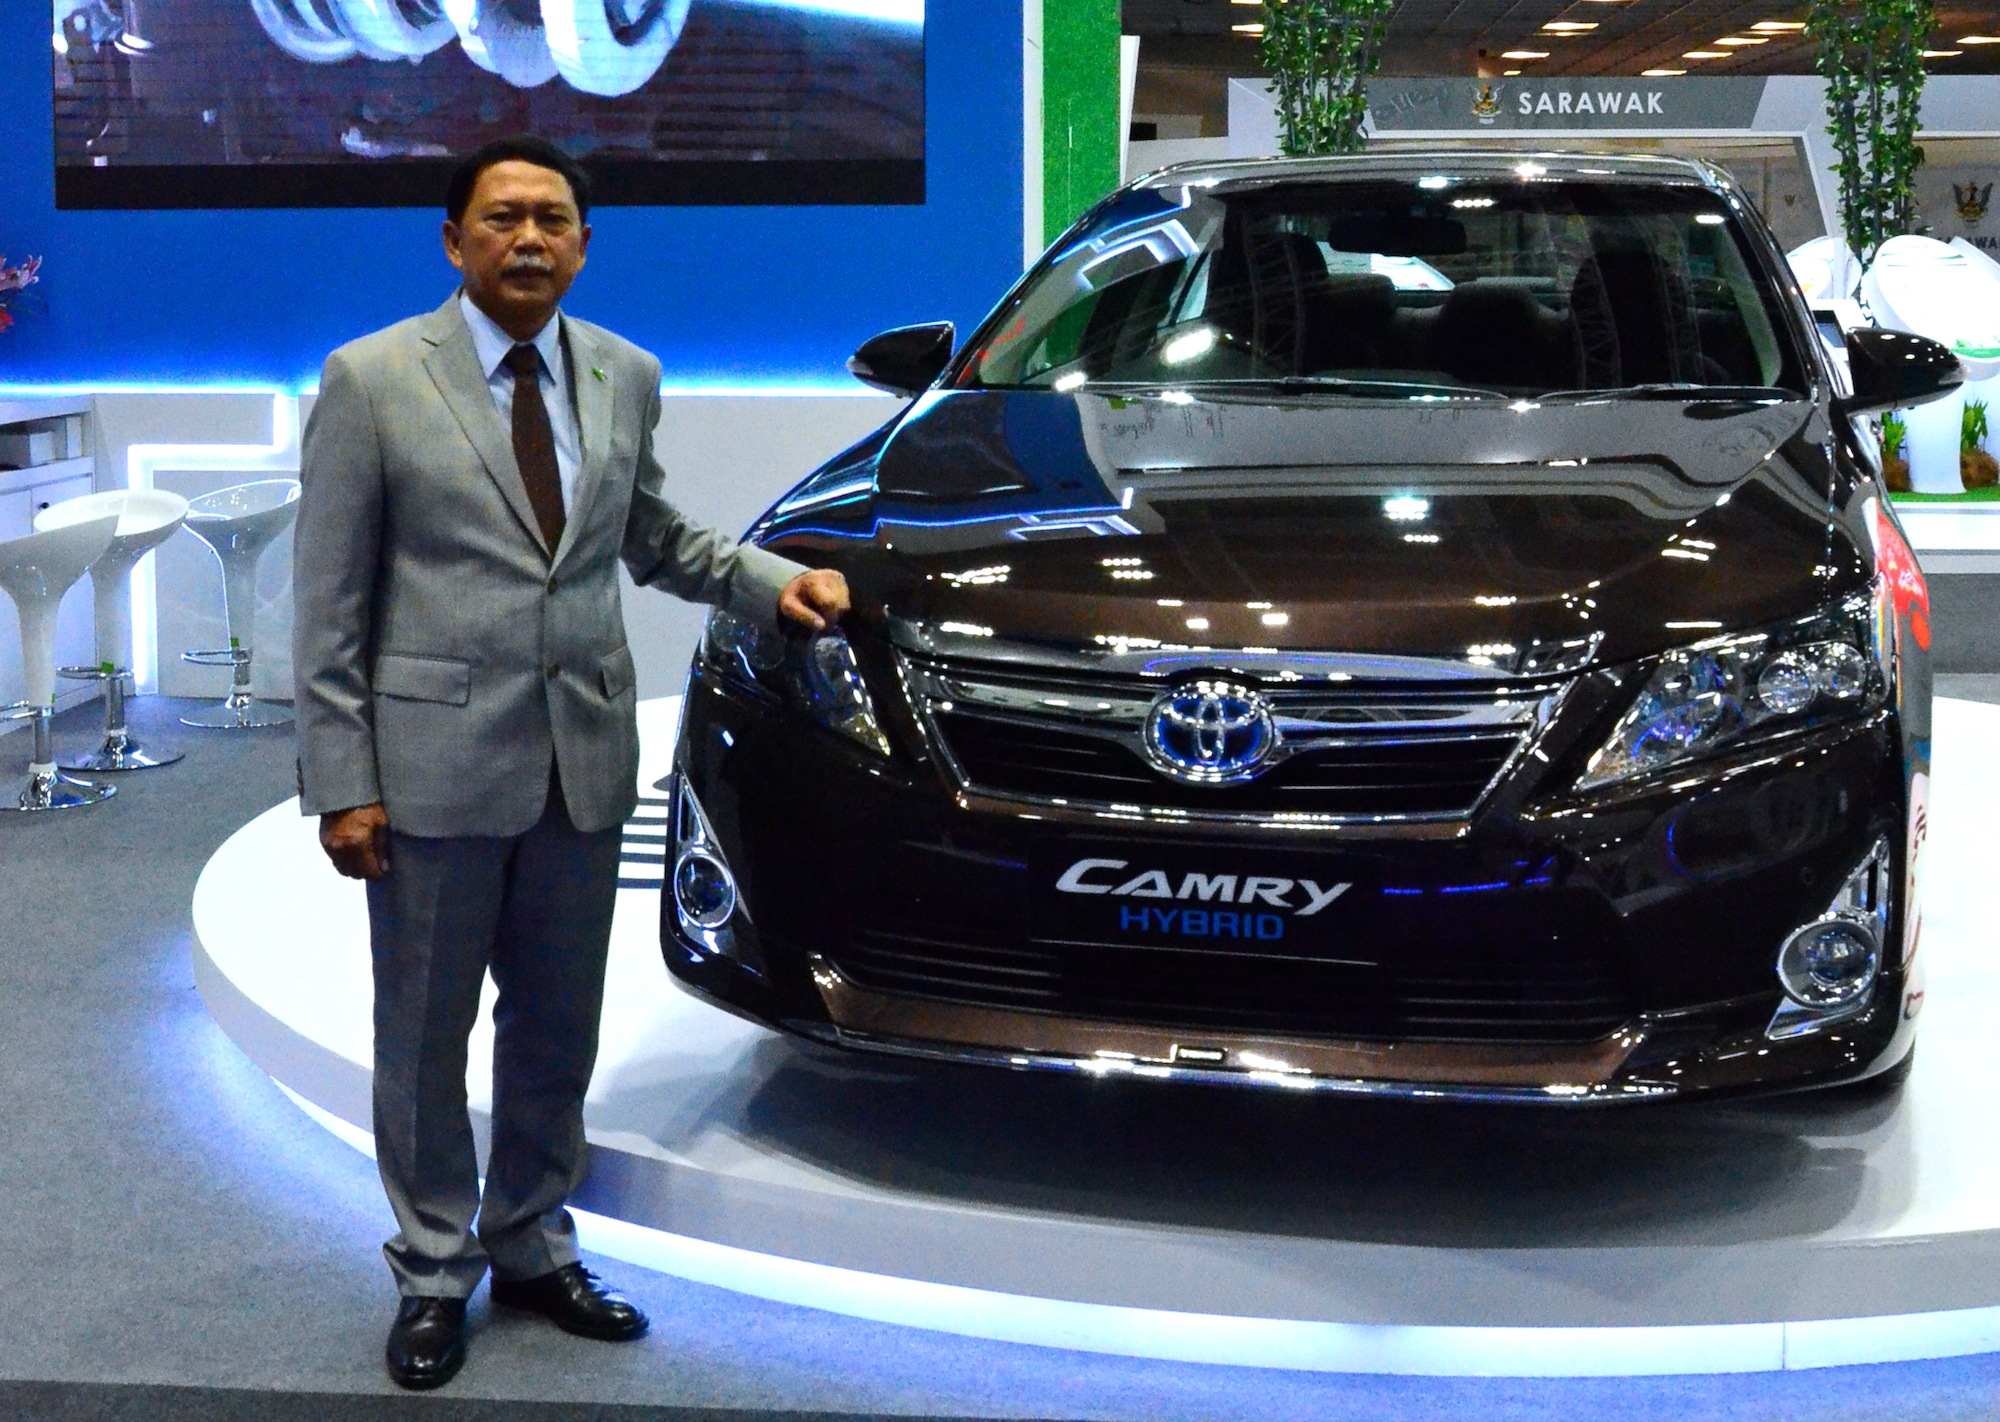 Umw Toyota Confirms Malaysian Camry Hybrid Ckd Plans